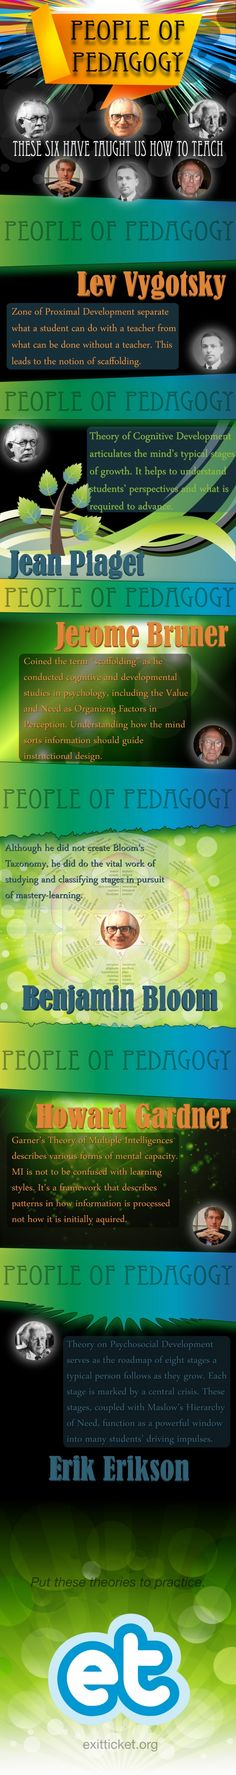 People of Pedagogy Lev Vygotsky is a behaviourist theorist Jean Piaget is much reputed for his theory of children's cognitive development Brumer's insightsin perceptive abilities of learners and its correlation with the learning motivation. Bloom a thinking continuum to help them define how well a skill or competency is learned or mastered. Gardner's theory of multiple intelligences Erikson's theory of psychosocial development